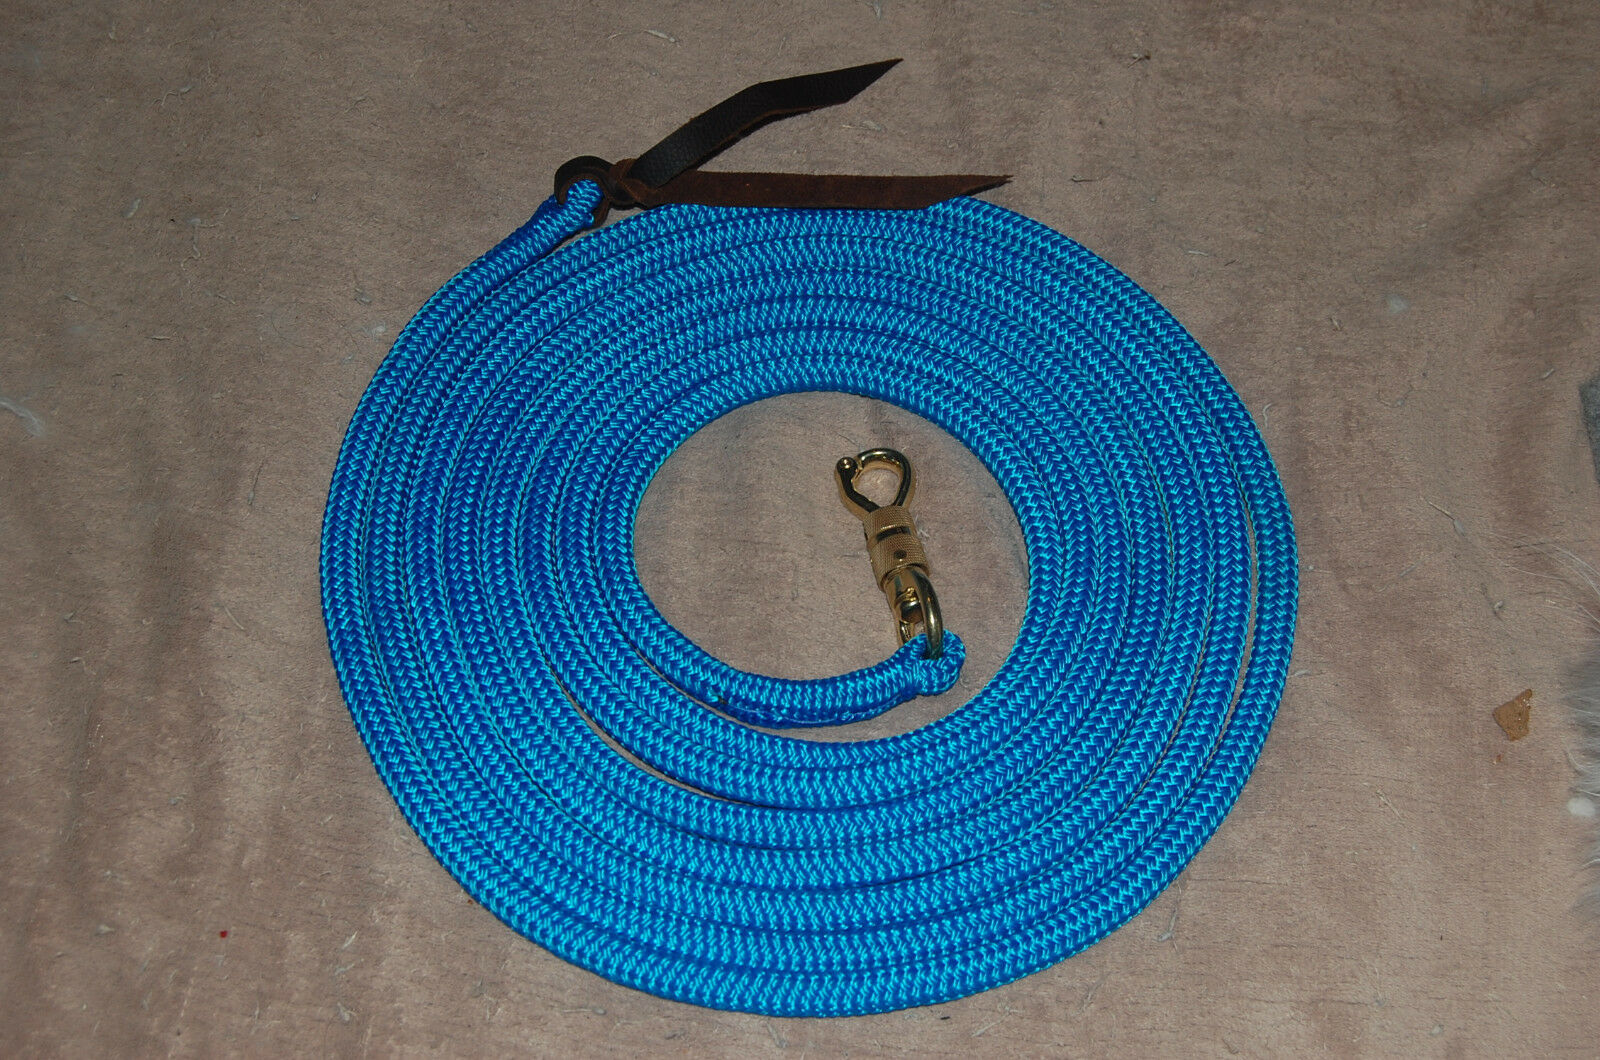 22' LONGE LINE LEAD ROPE W TWIST  SNAP FOR PARELLI TRAINING METHOD, MANY COLORS   on sale 70% off